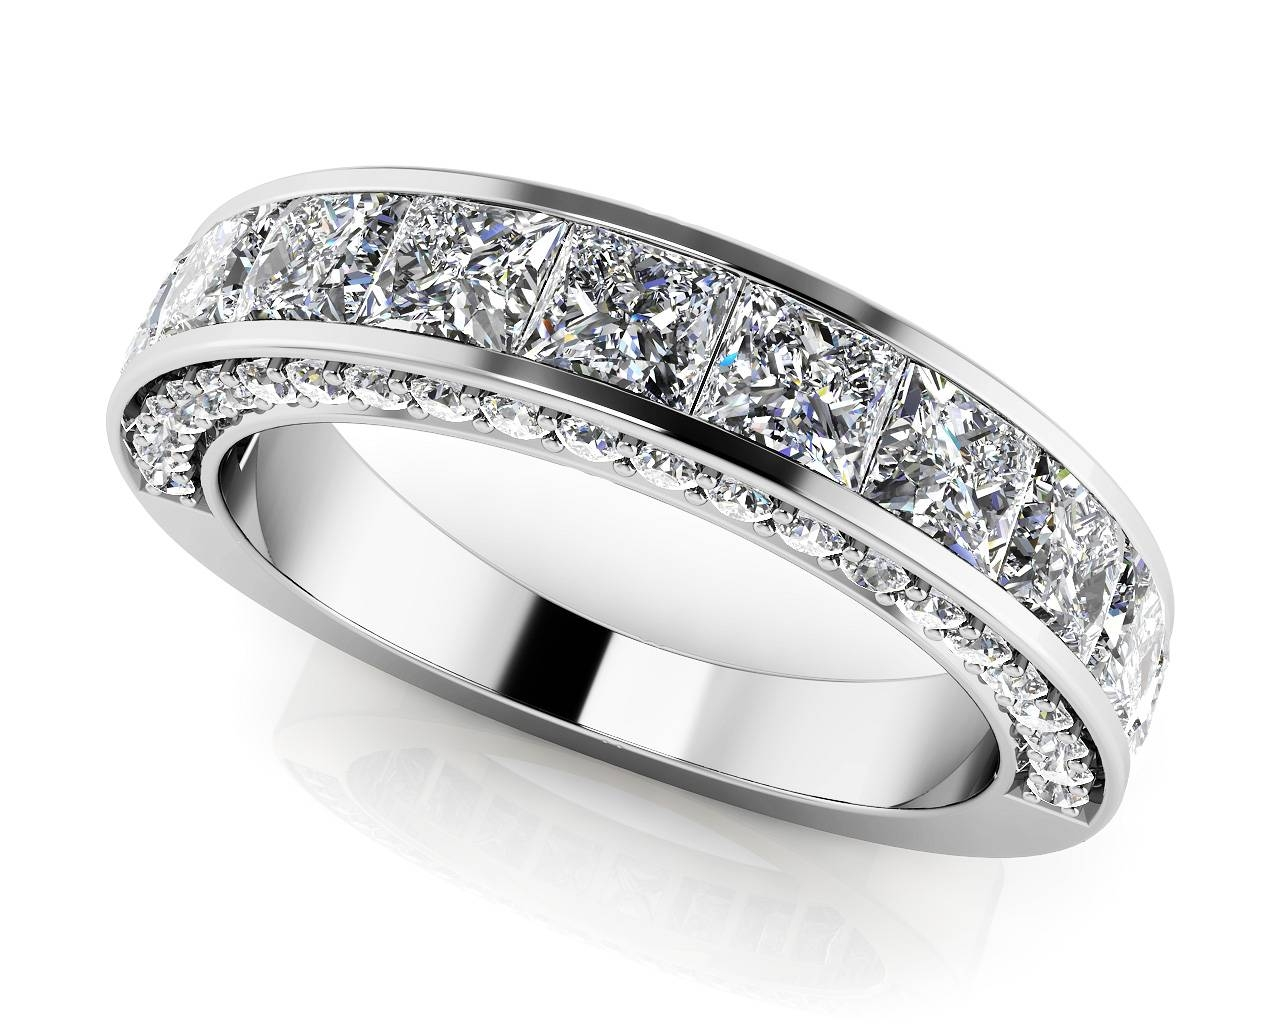 Design Your Own Diamond Anniversary Ring & Eternity Ring Within Latest Diamond Wedding Anniversary Rings (Gallery 11 of 25)